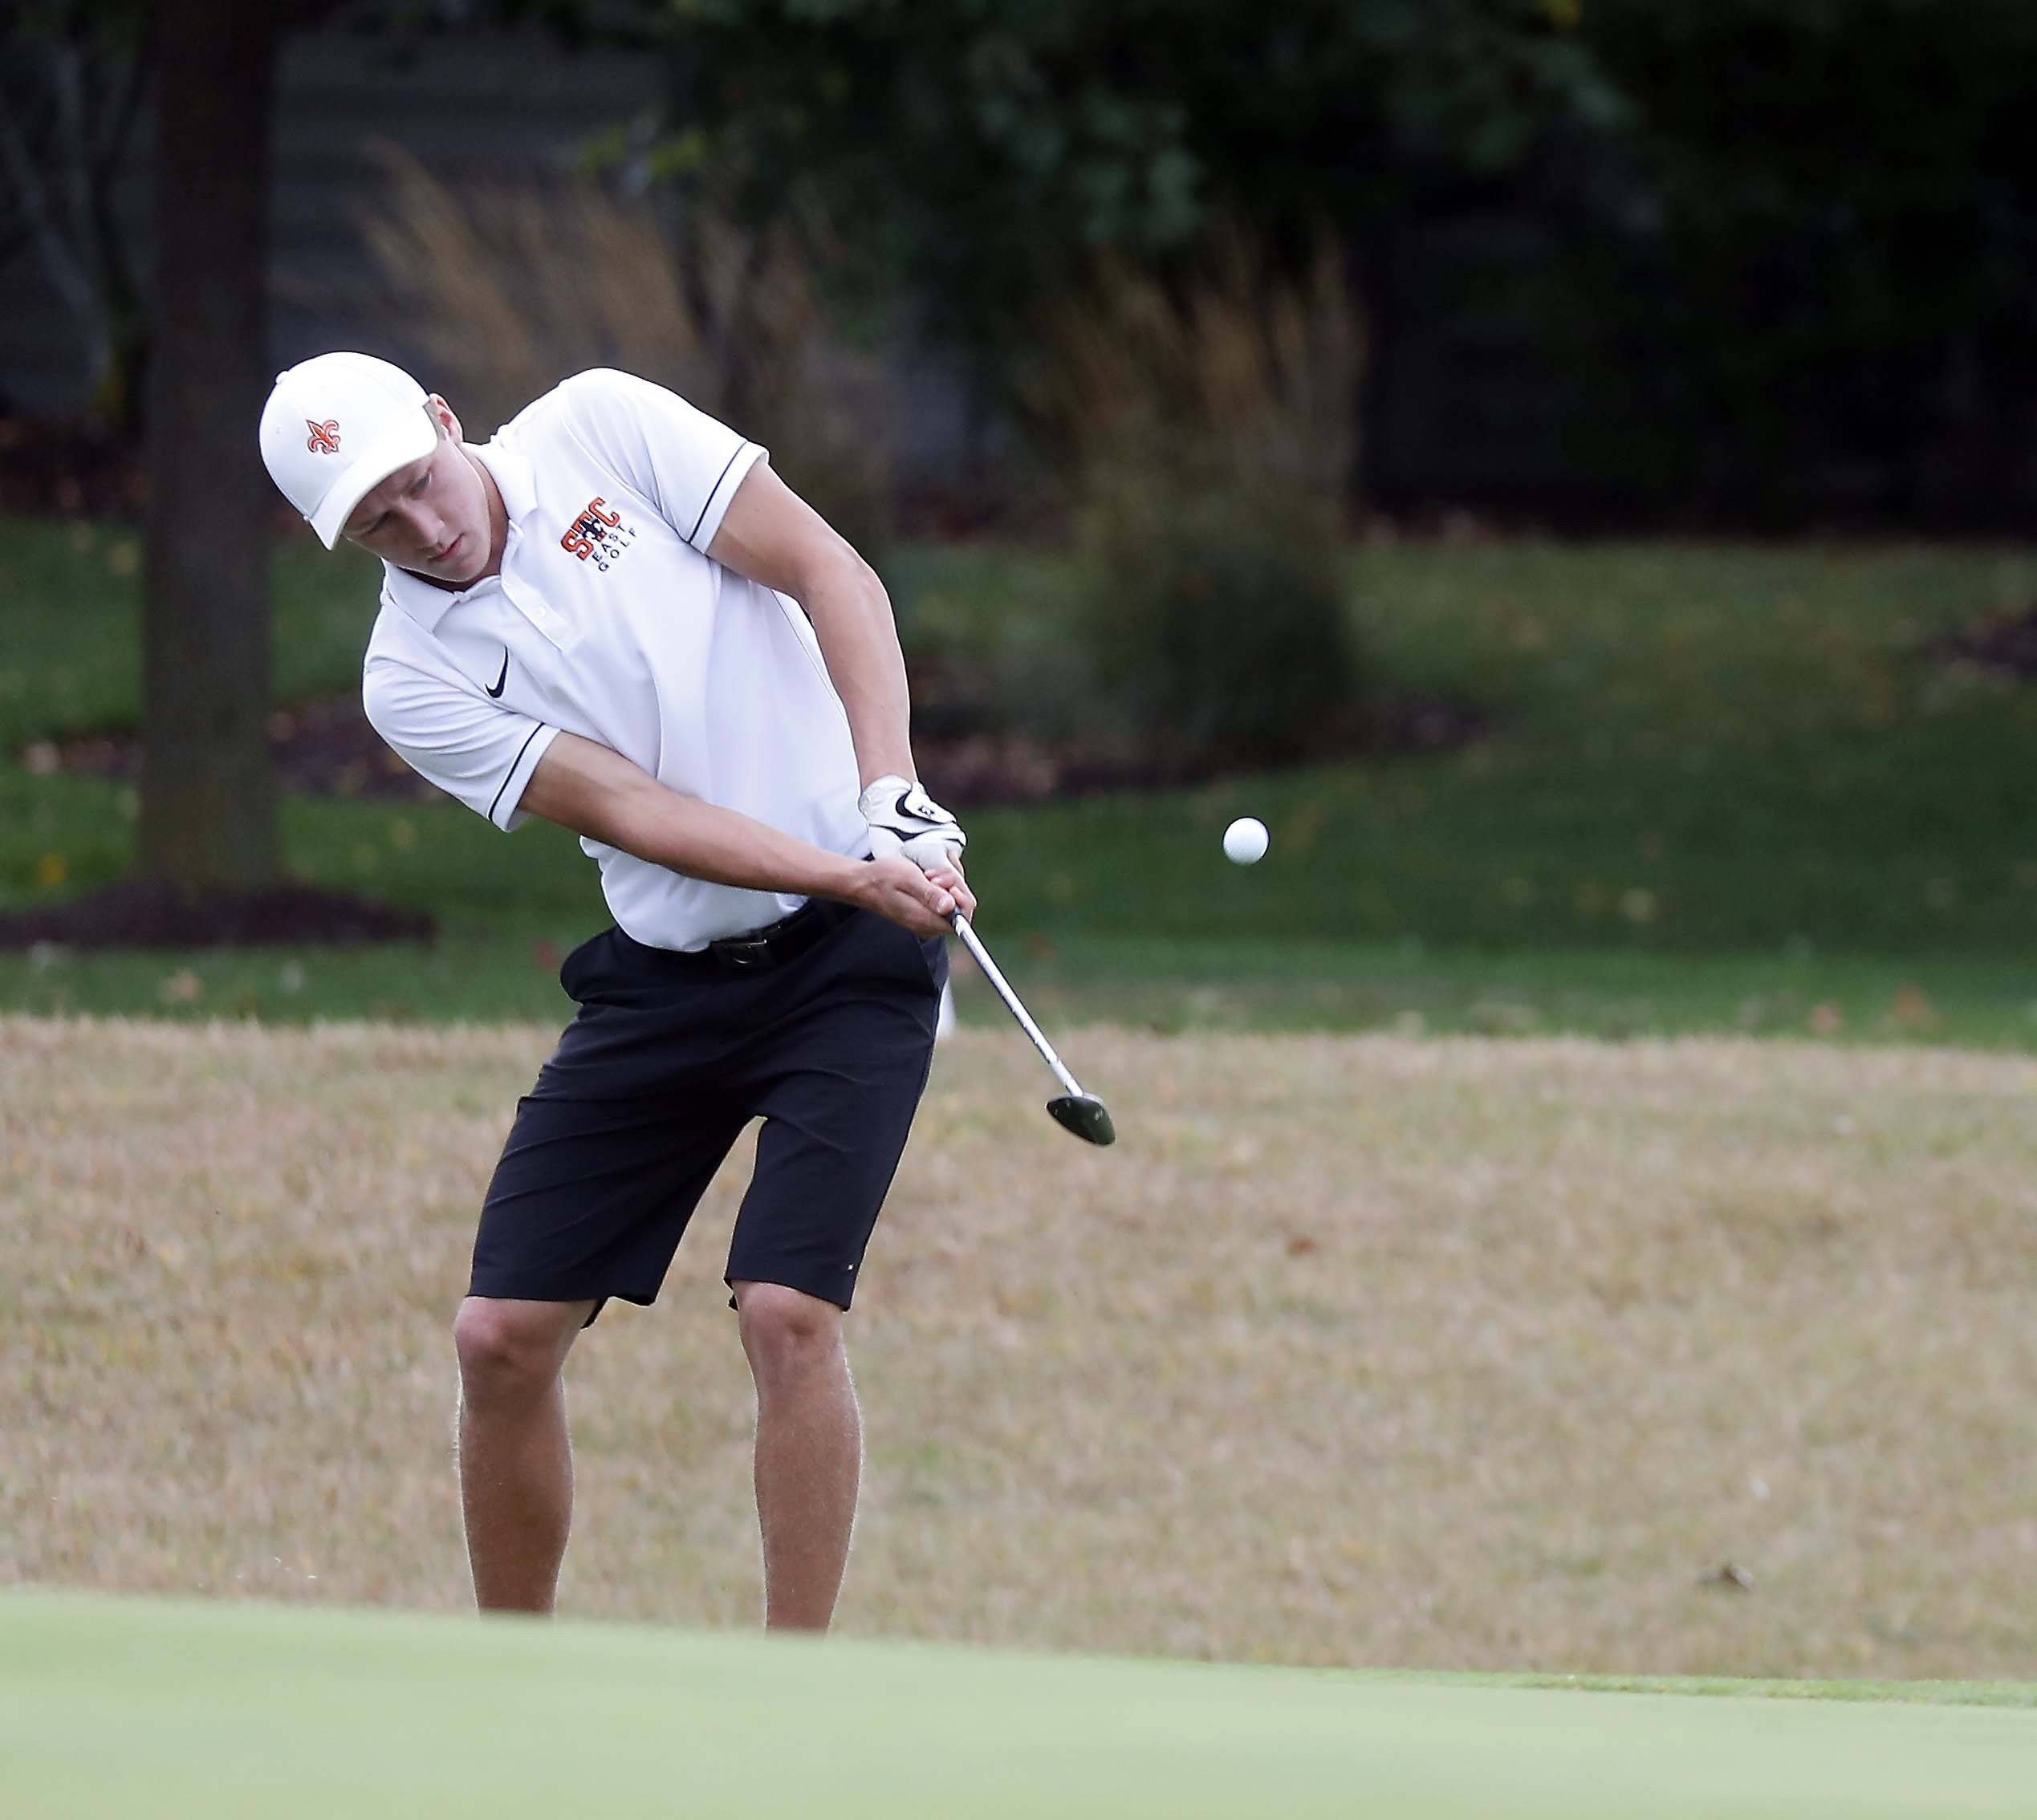 St. Charles East's Mason Meadows chips to the second green Tuesday during the Geneva boys golf regional at Mill Creek Golf Club.